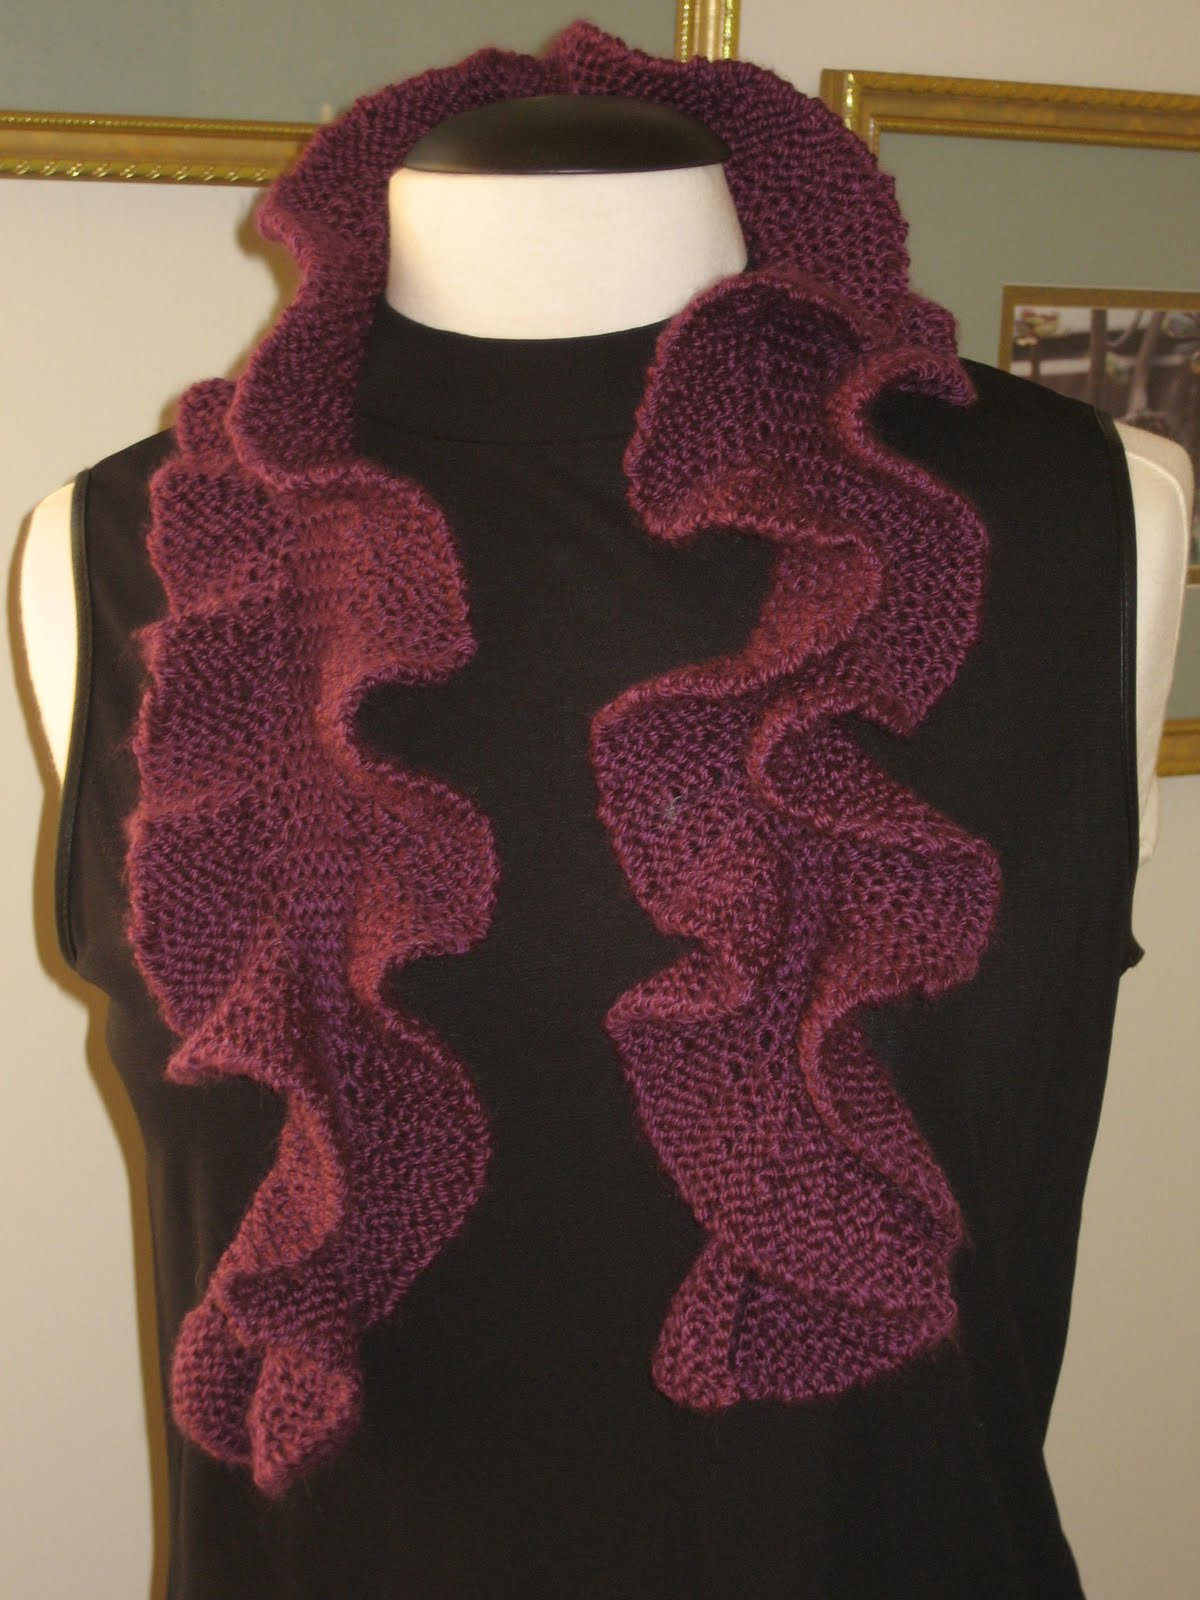 Knitting Pattern For Potato Chip Scarf : Potato Chip Scarf Knit Pattern A Knitting Blog